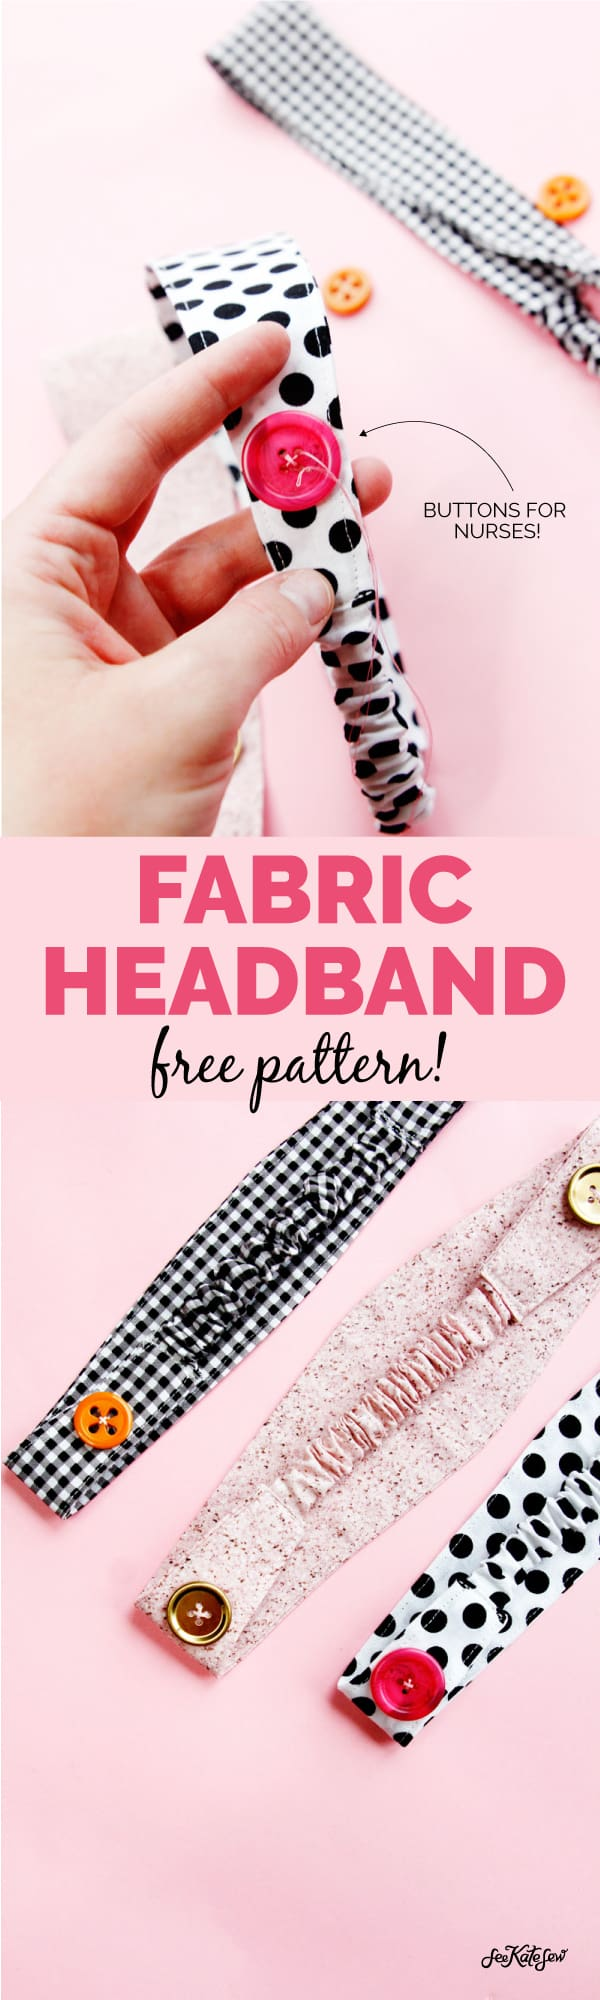 Fabric Headband | Add a button for nurses | Fabric Headband